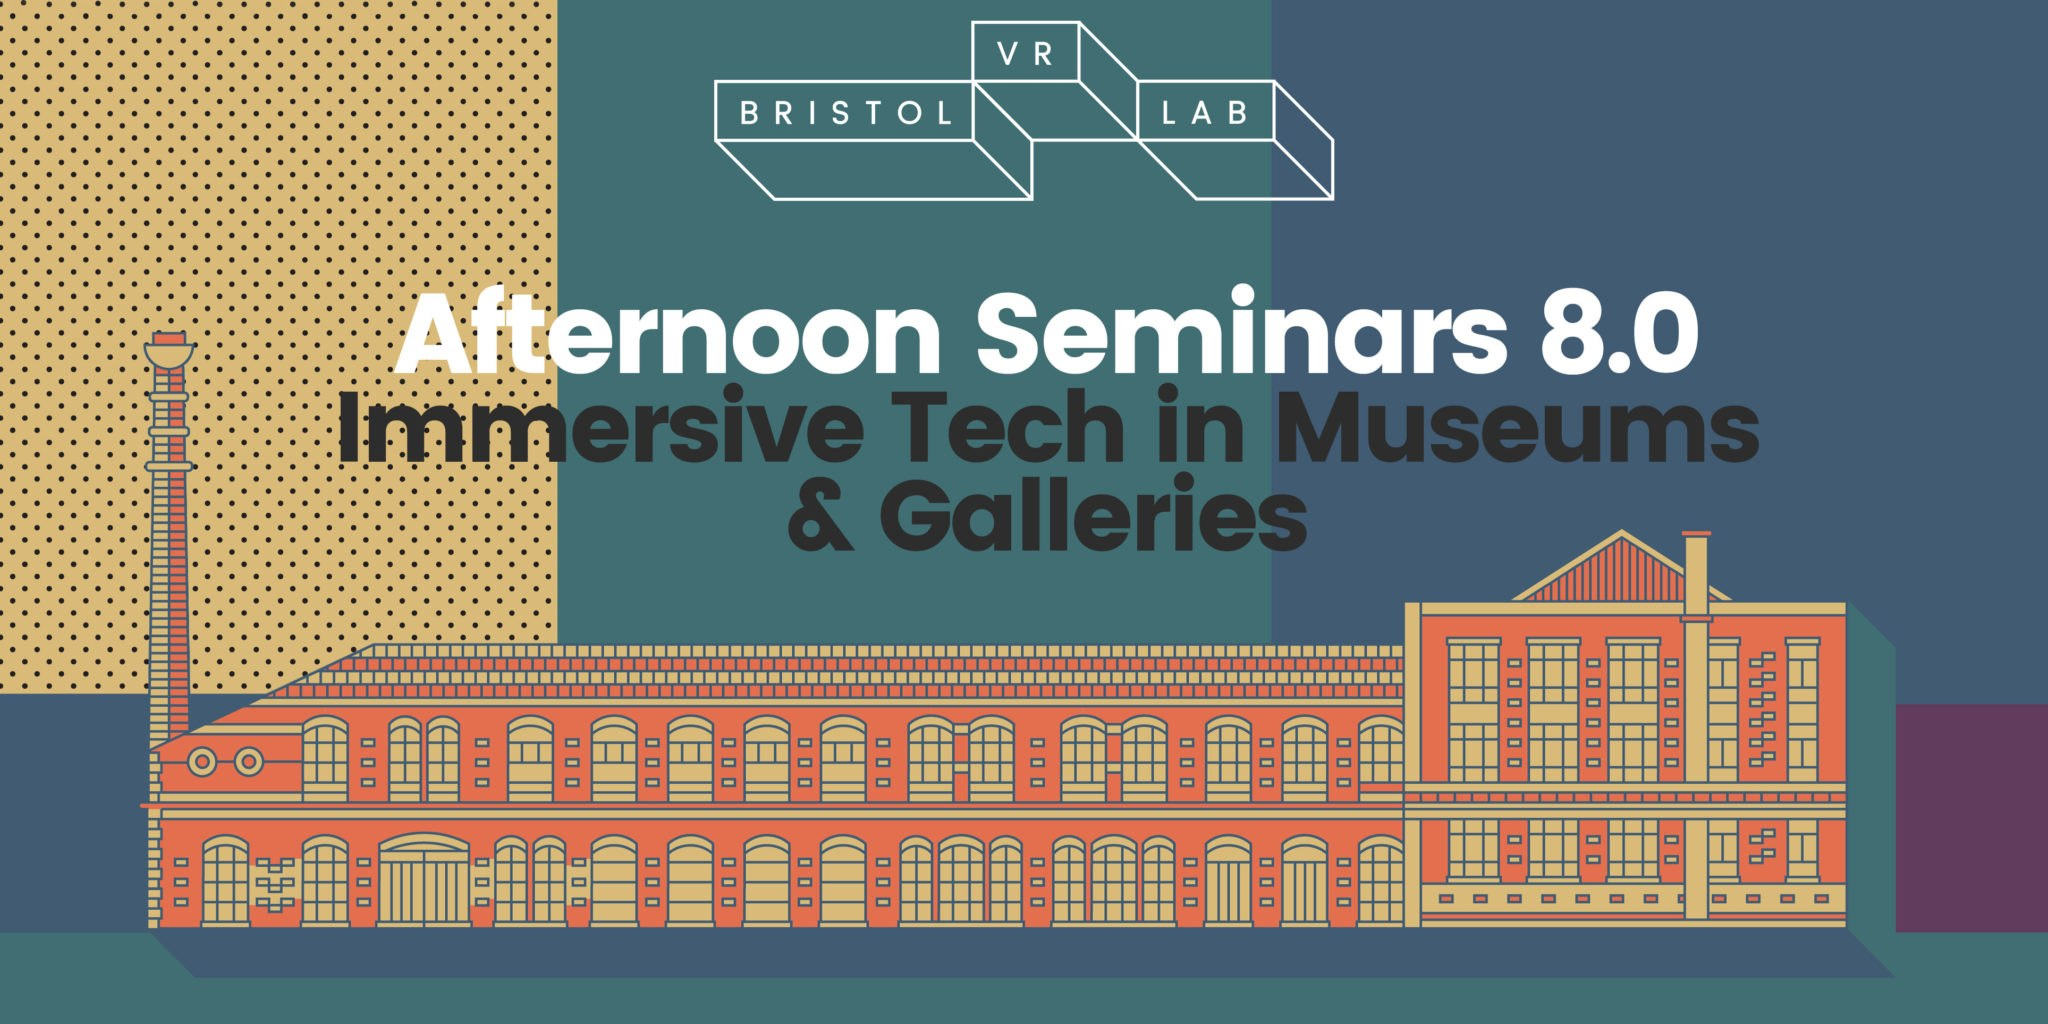 BVRL Afternoon Seminars 8.0 – Immersive Technology in Museums and Galleries